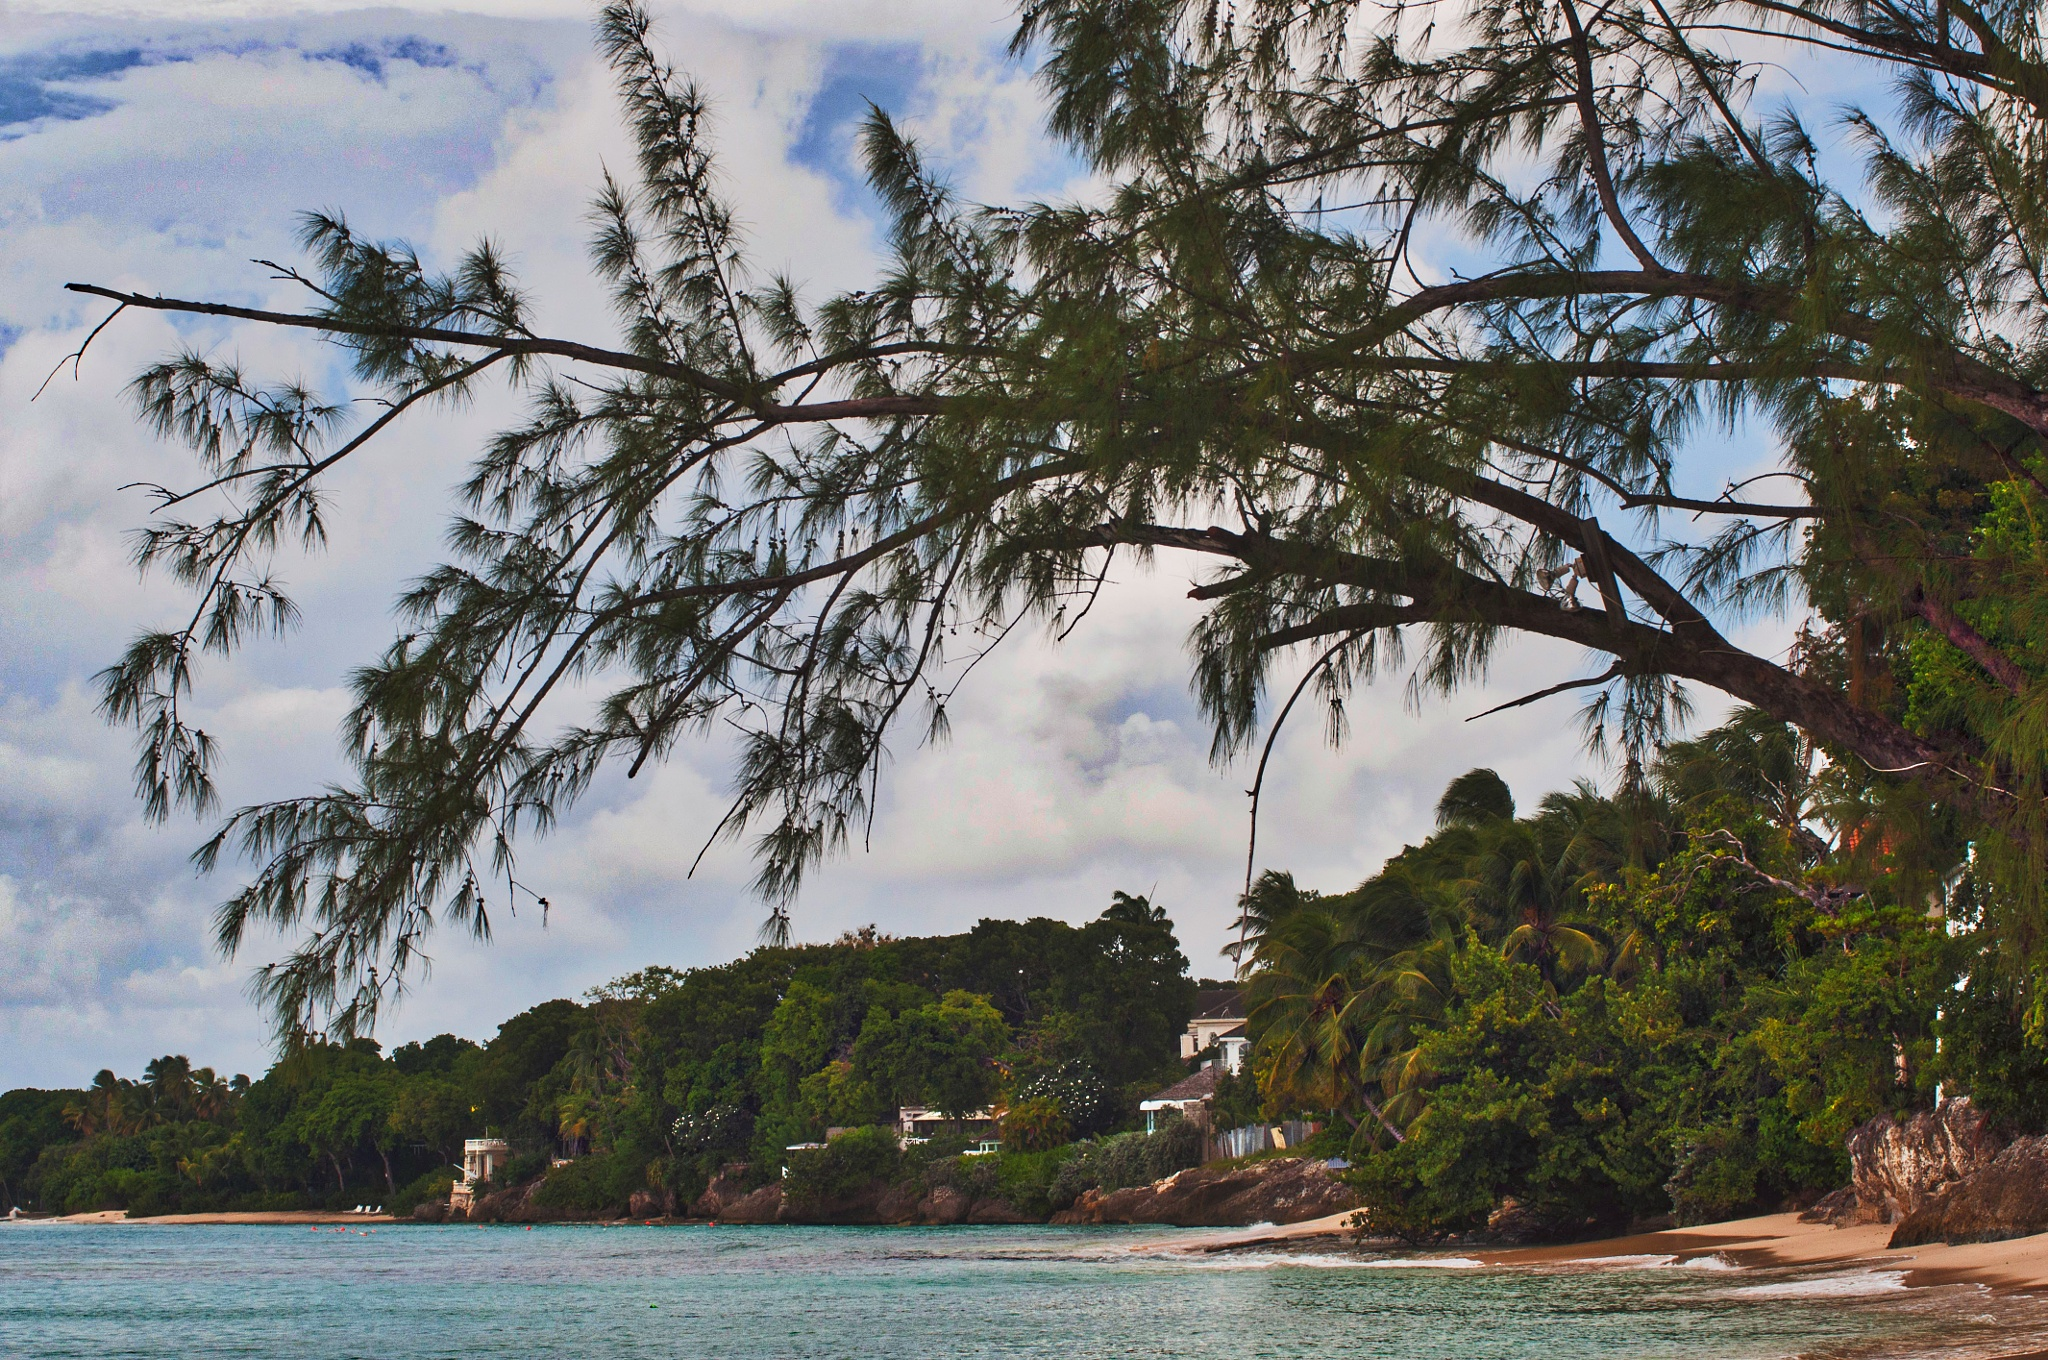 Tree Over-Arching the Beach, St Peters, Barbados by Wayne L. Talbot